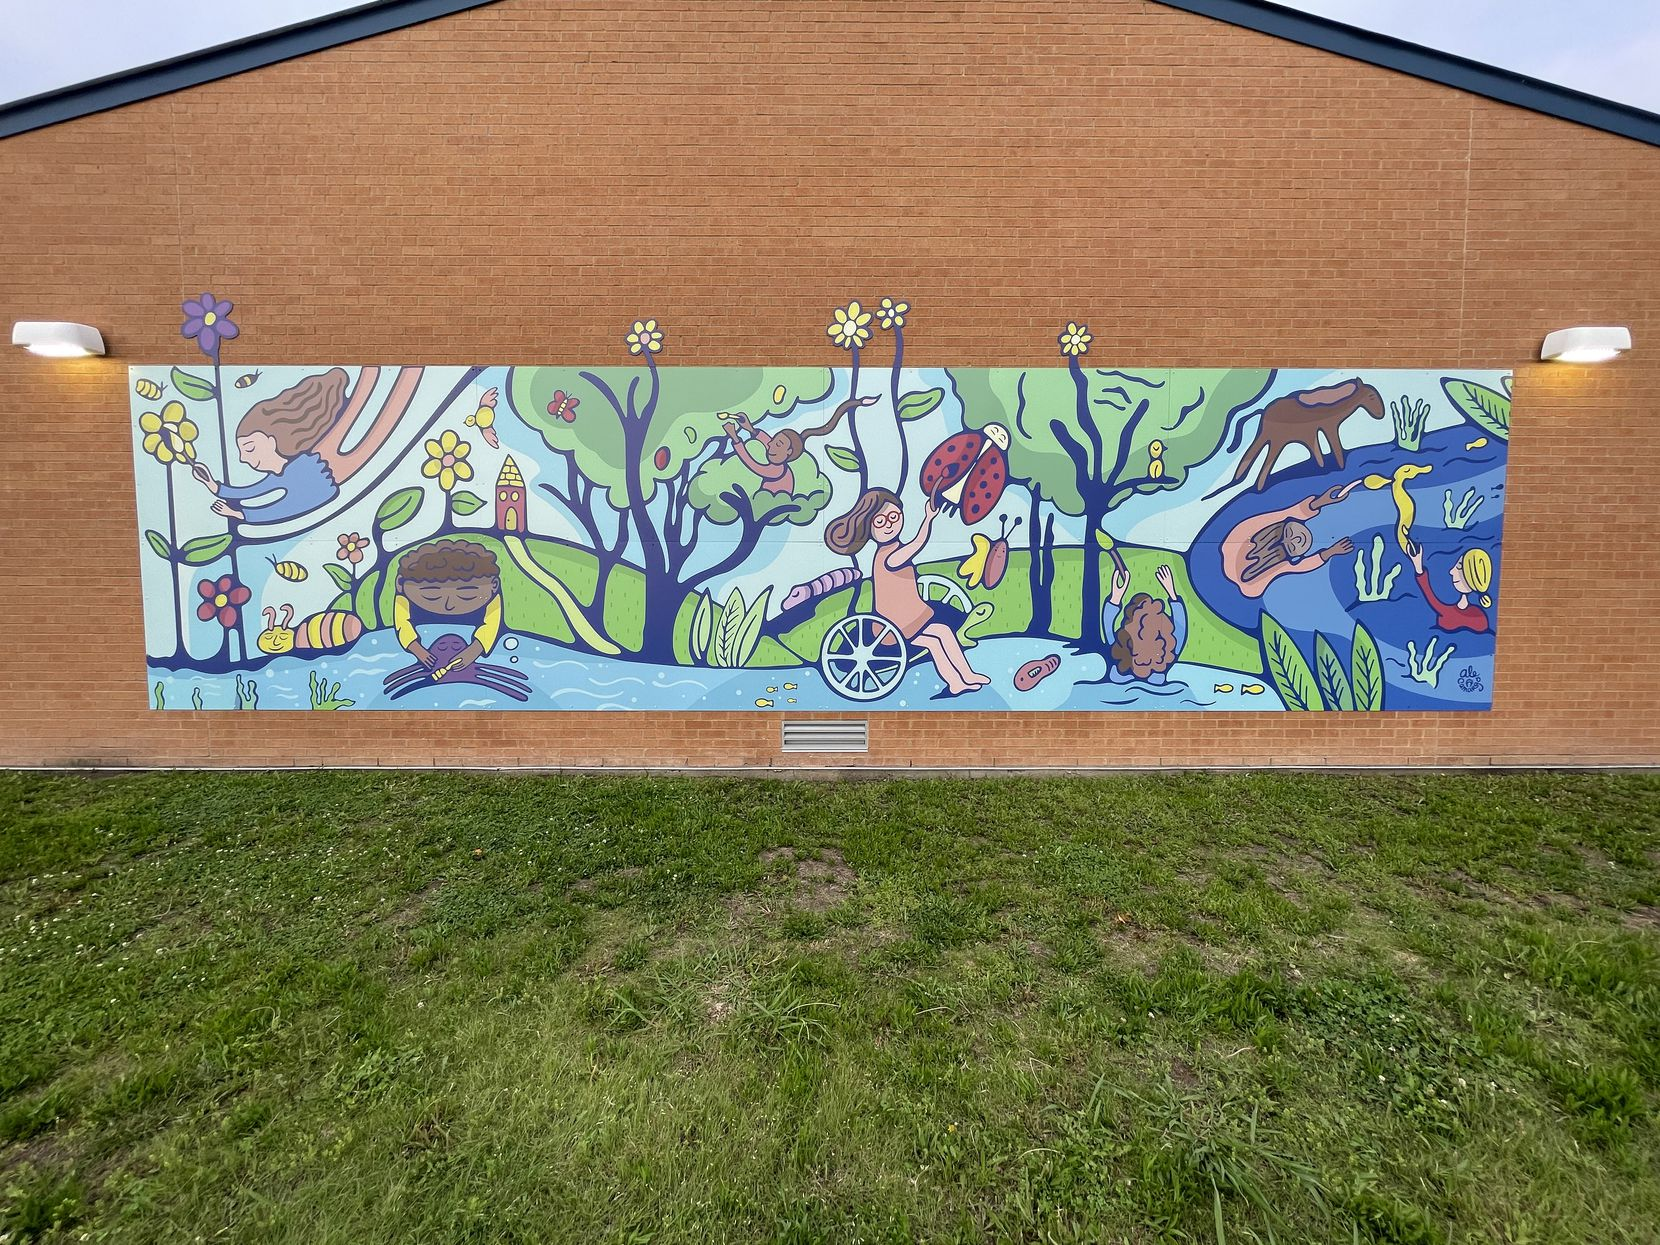 The mural at DISD's Burnett Elementary, by artist Alejandra Camargo, is dedicated to Virginia Escalante, a devoted school volunteer and PTA treasurer who died of the coronavirus. At the center of the fantastical rendering of children climbing out of clouds and trees is an image of the smiling Escalante.